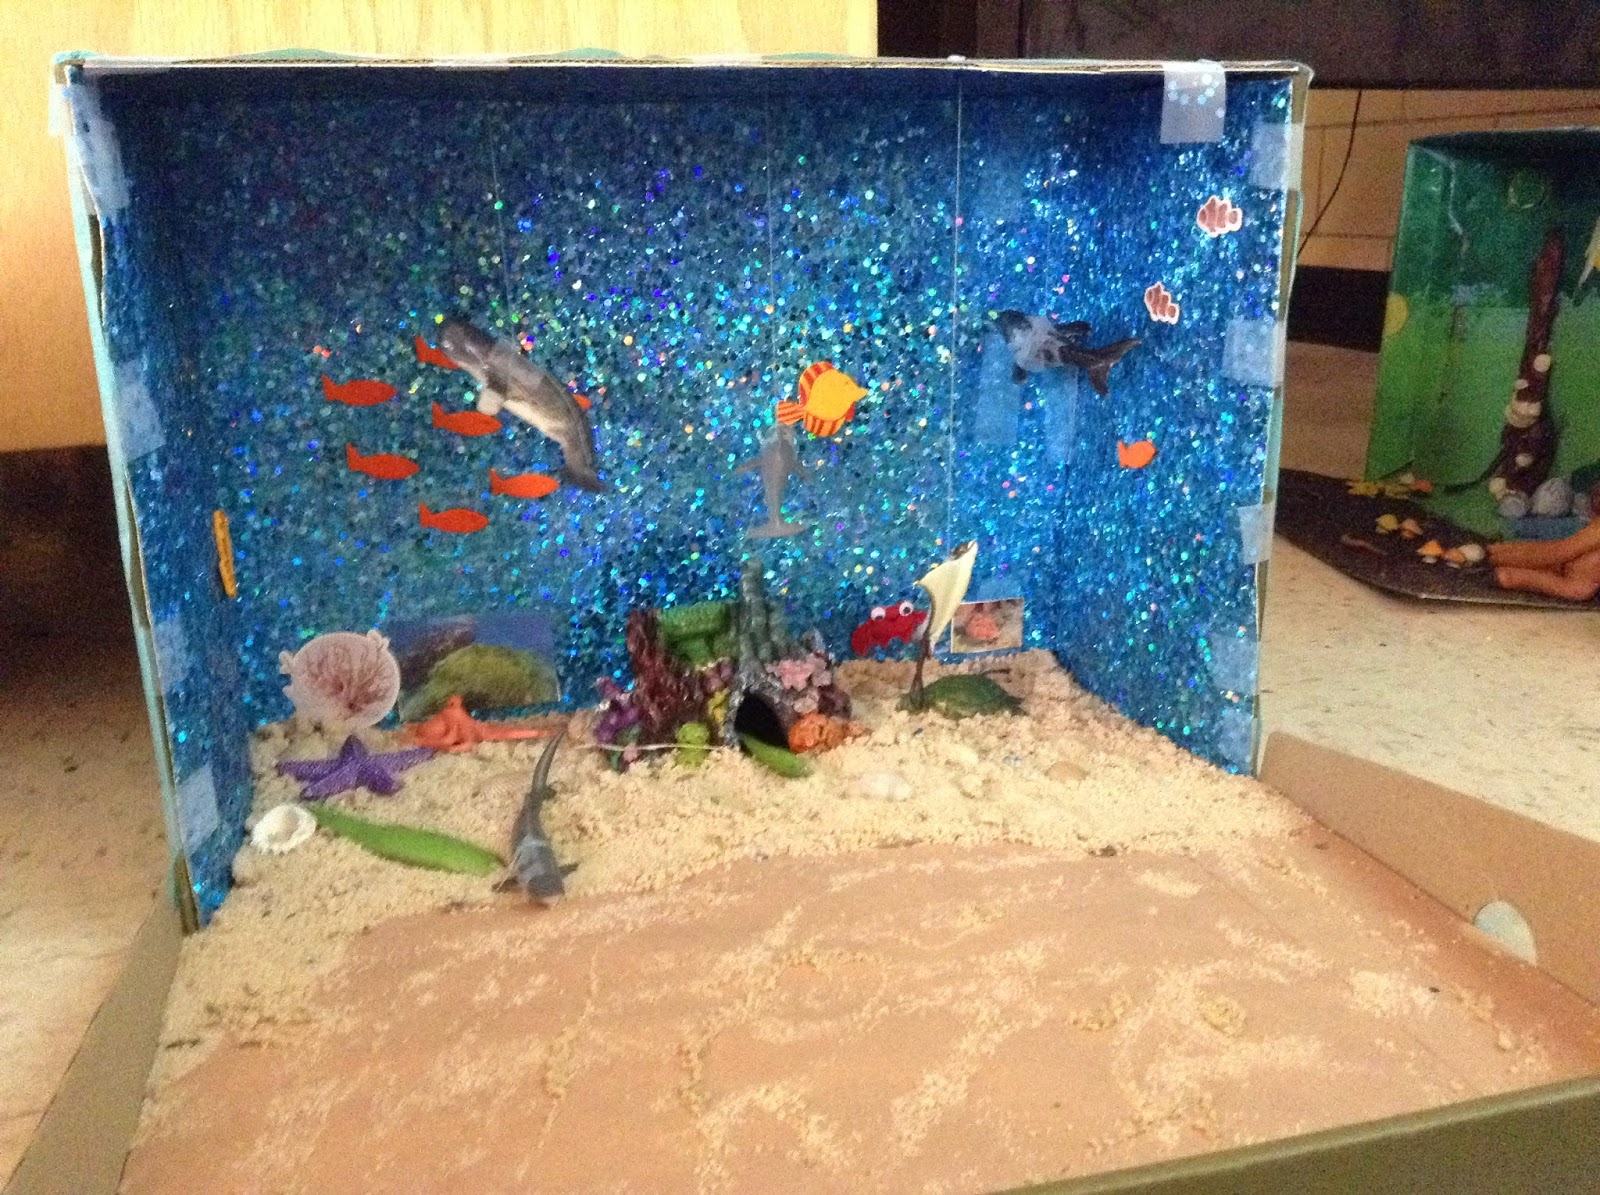 The cougars roar this diorama of the coral reef biome was made by savannah russell she has real sand and real animal toys sciox Image collections